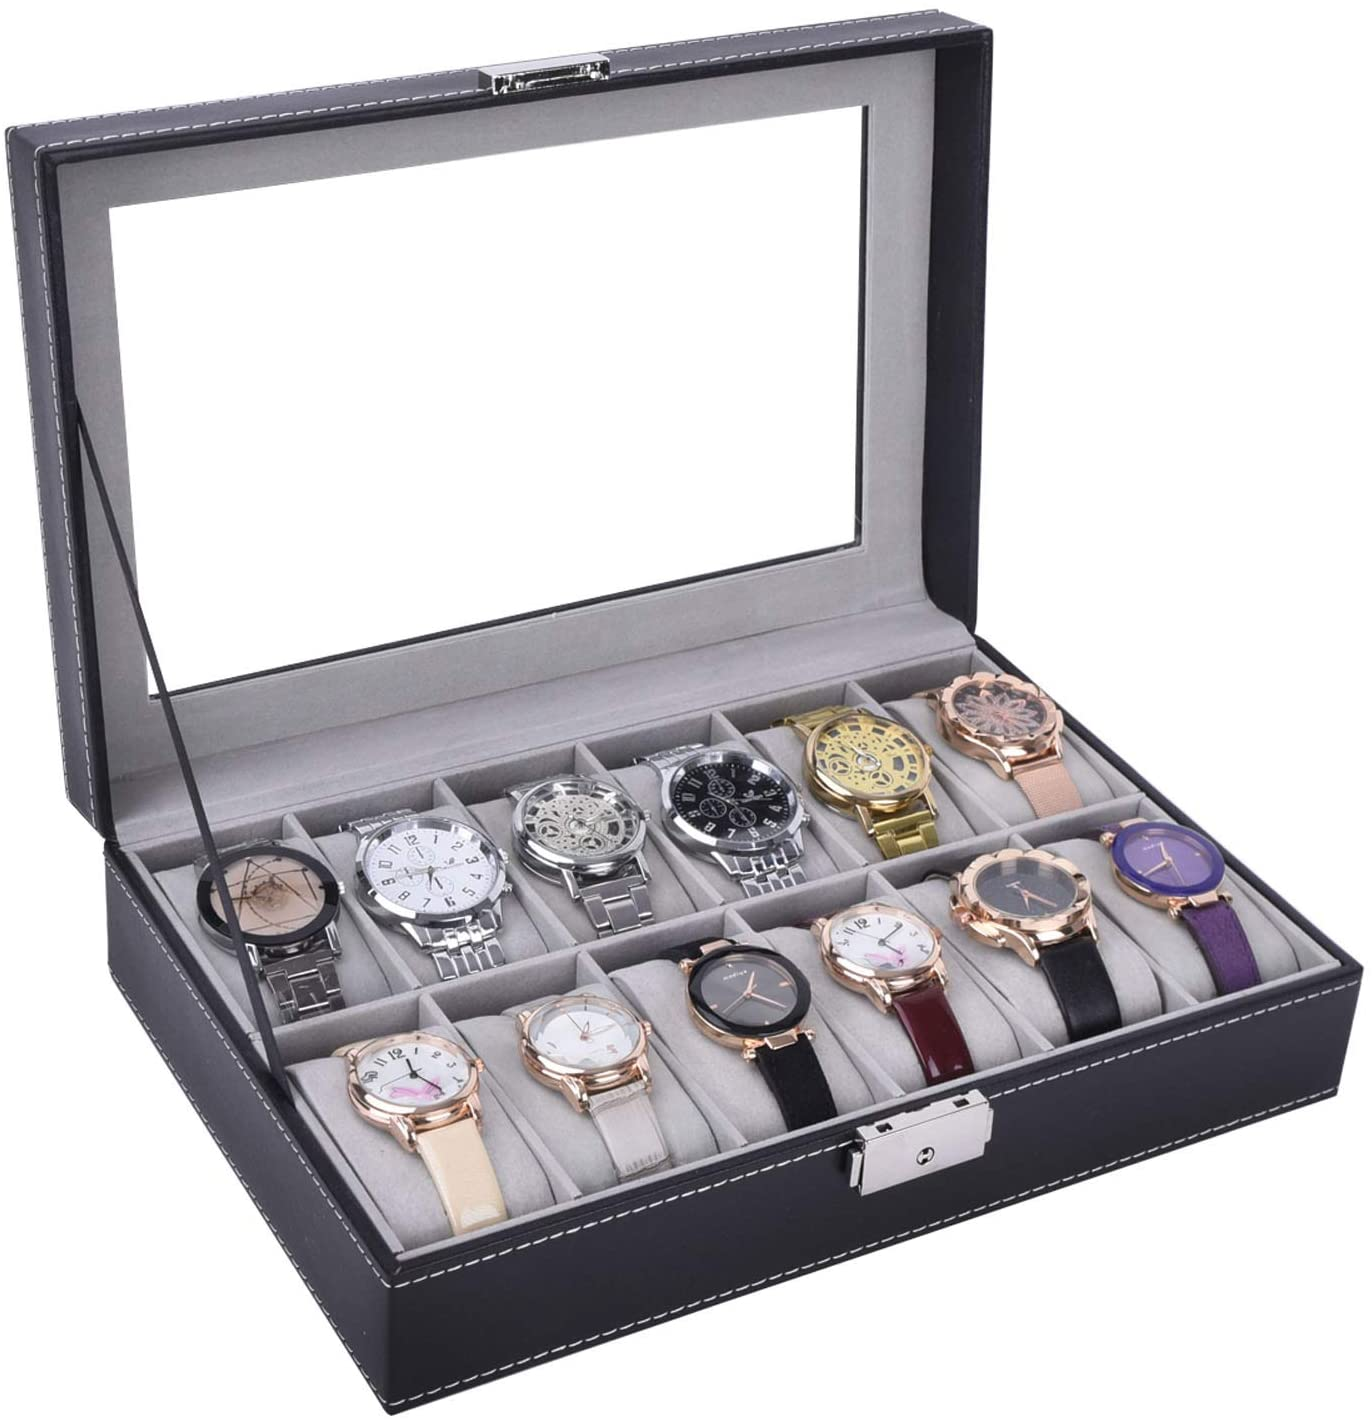 AUTOARK Leather 12 Watch Box Glass Top Watch Jewelry Display Case Organizer,Black,AW-040